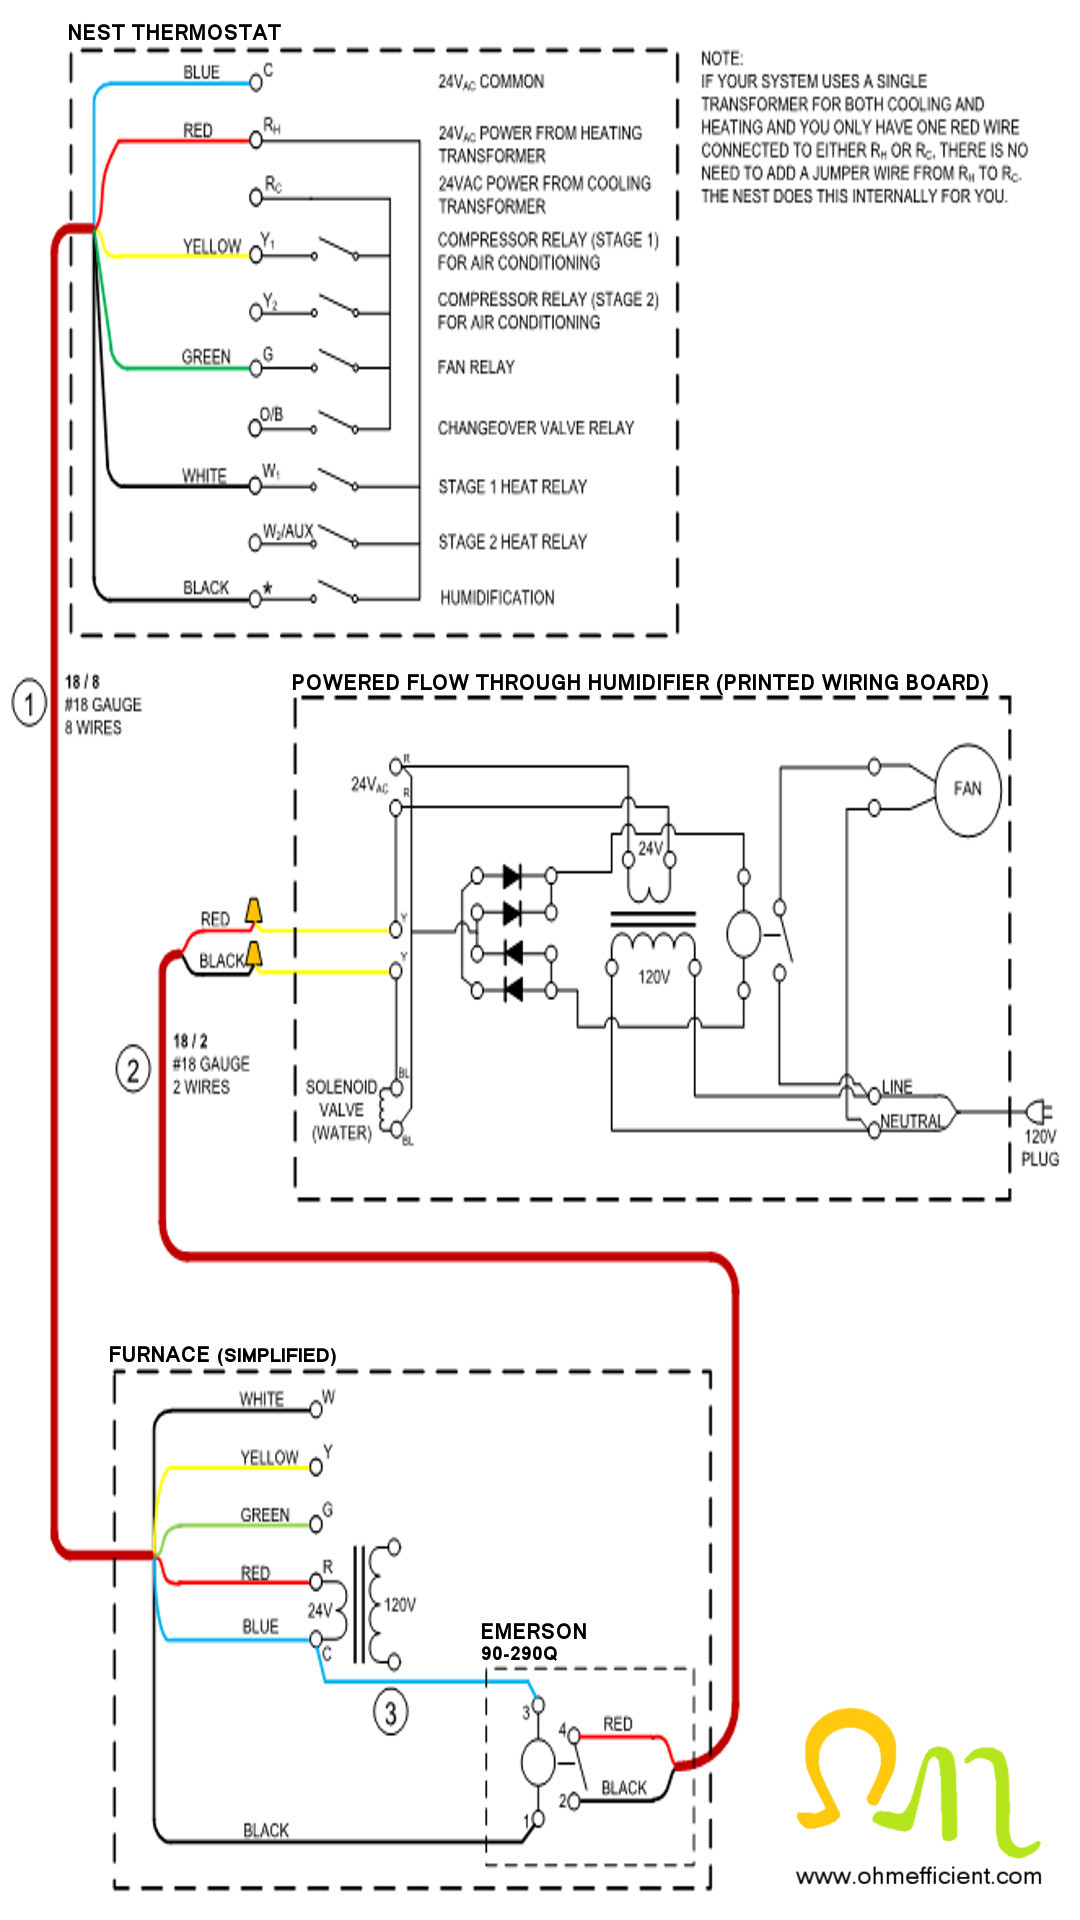 Nest Thermostat Humidifier Wiring Diagram | Manual E-Books - Nest Thermostat 2 Wiring Diagram